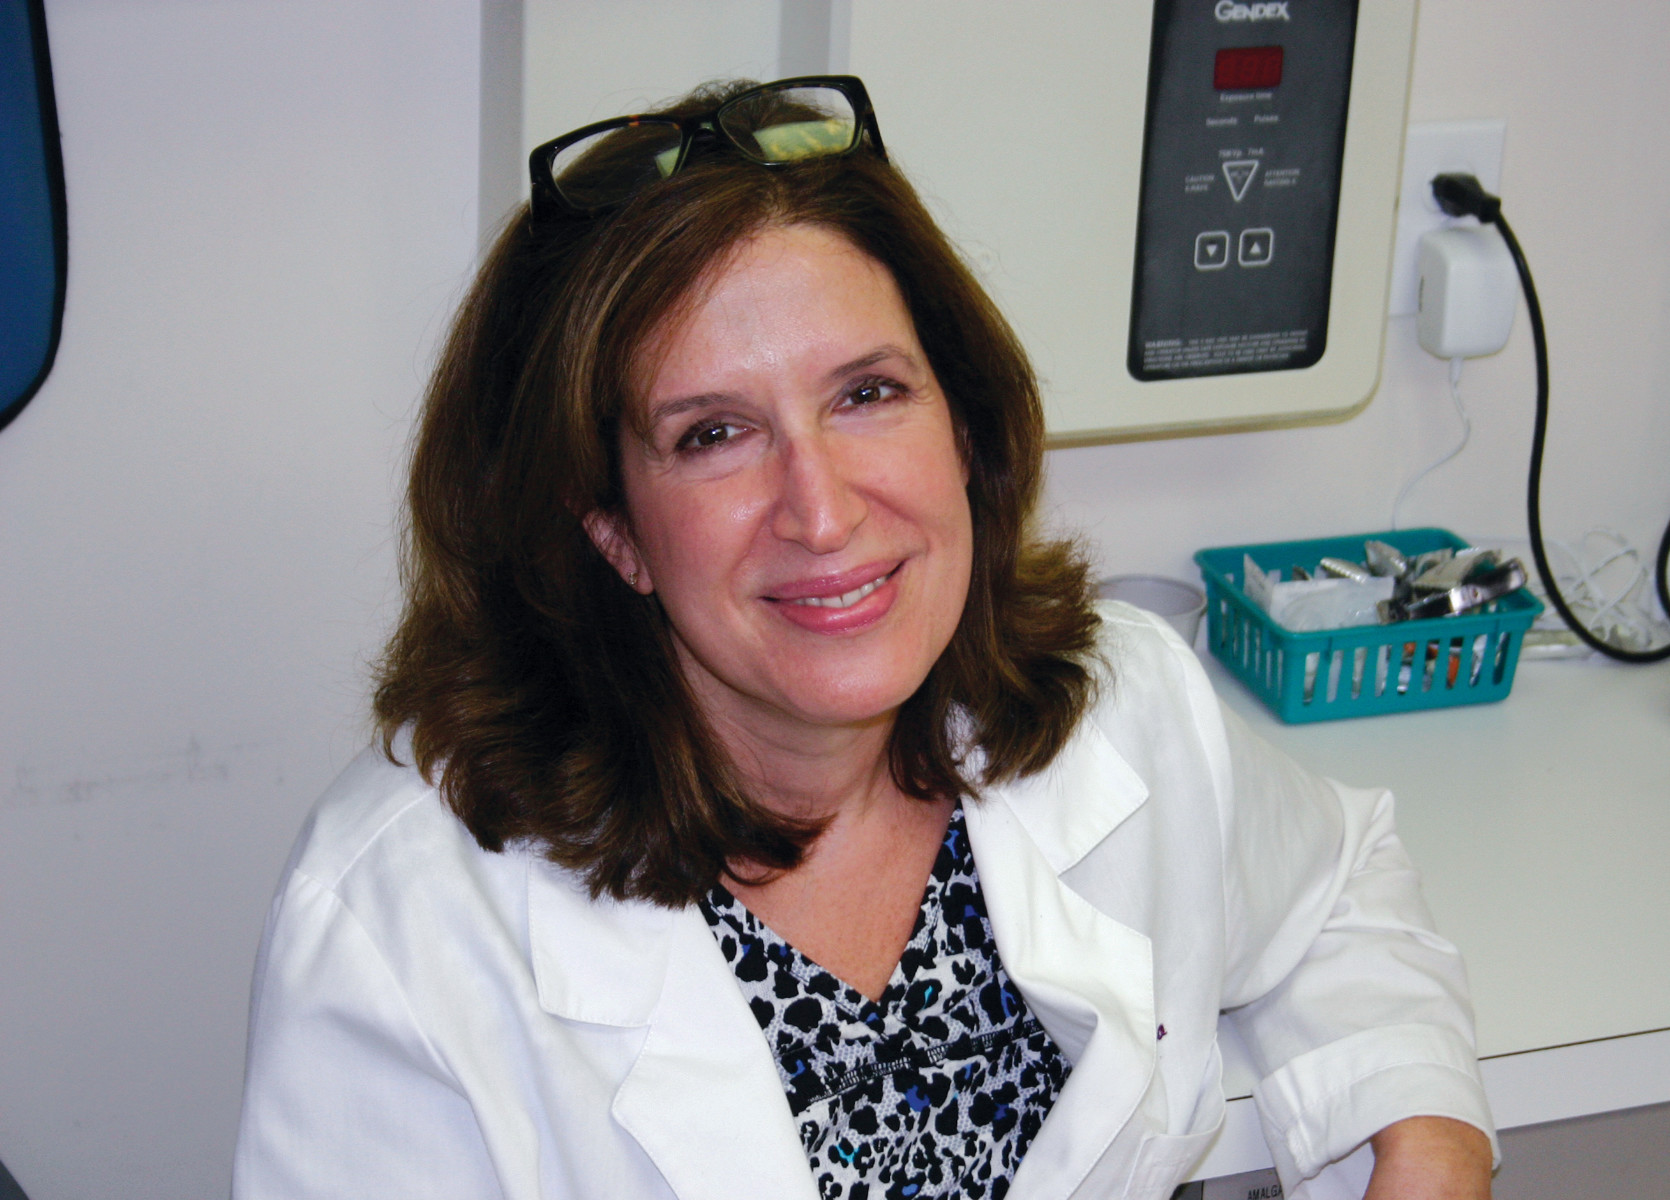 Meet Dr. Elisa Liberto, DMD, a family dentist for over 26 years who welcomes new patients to her practice on Jefferson Boulevard ~ get your new year off to a great start with a cleaning and a whitening treatment!